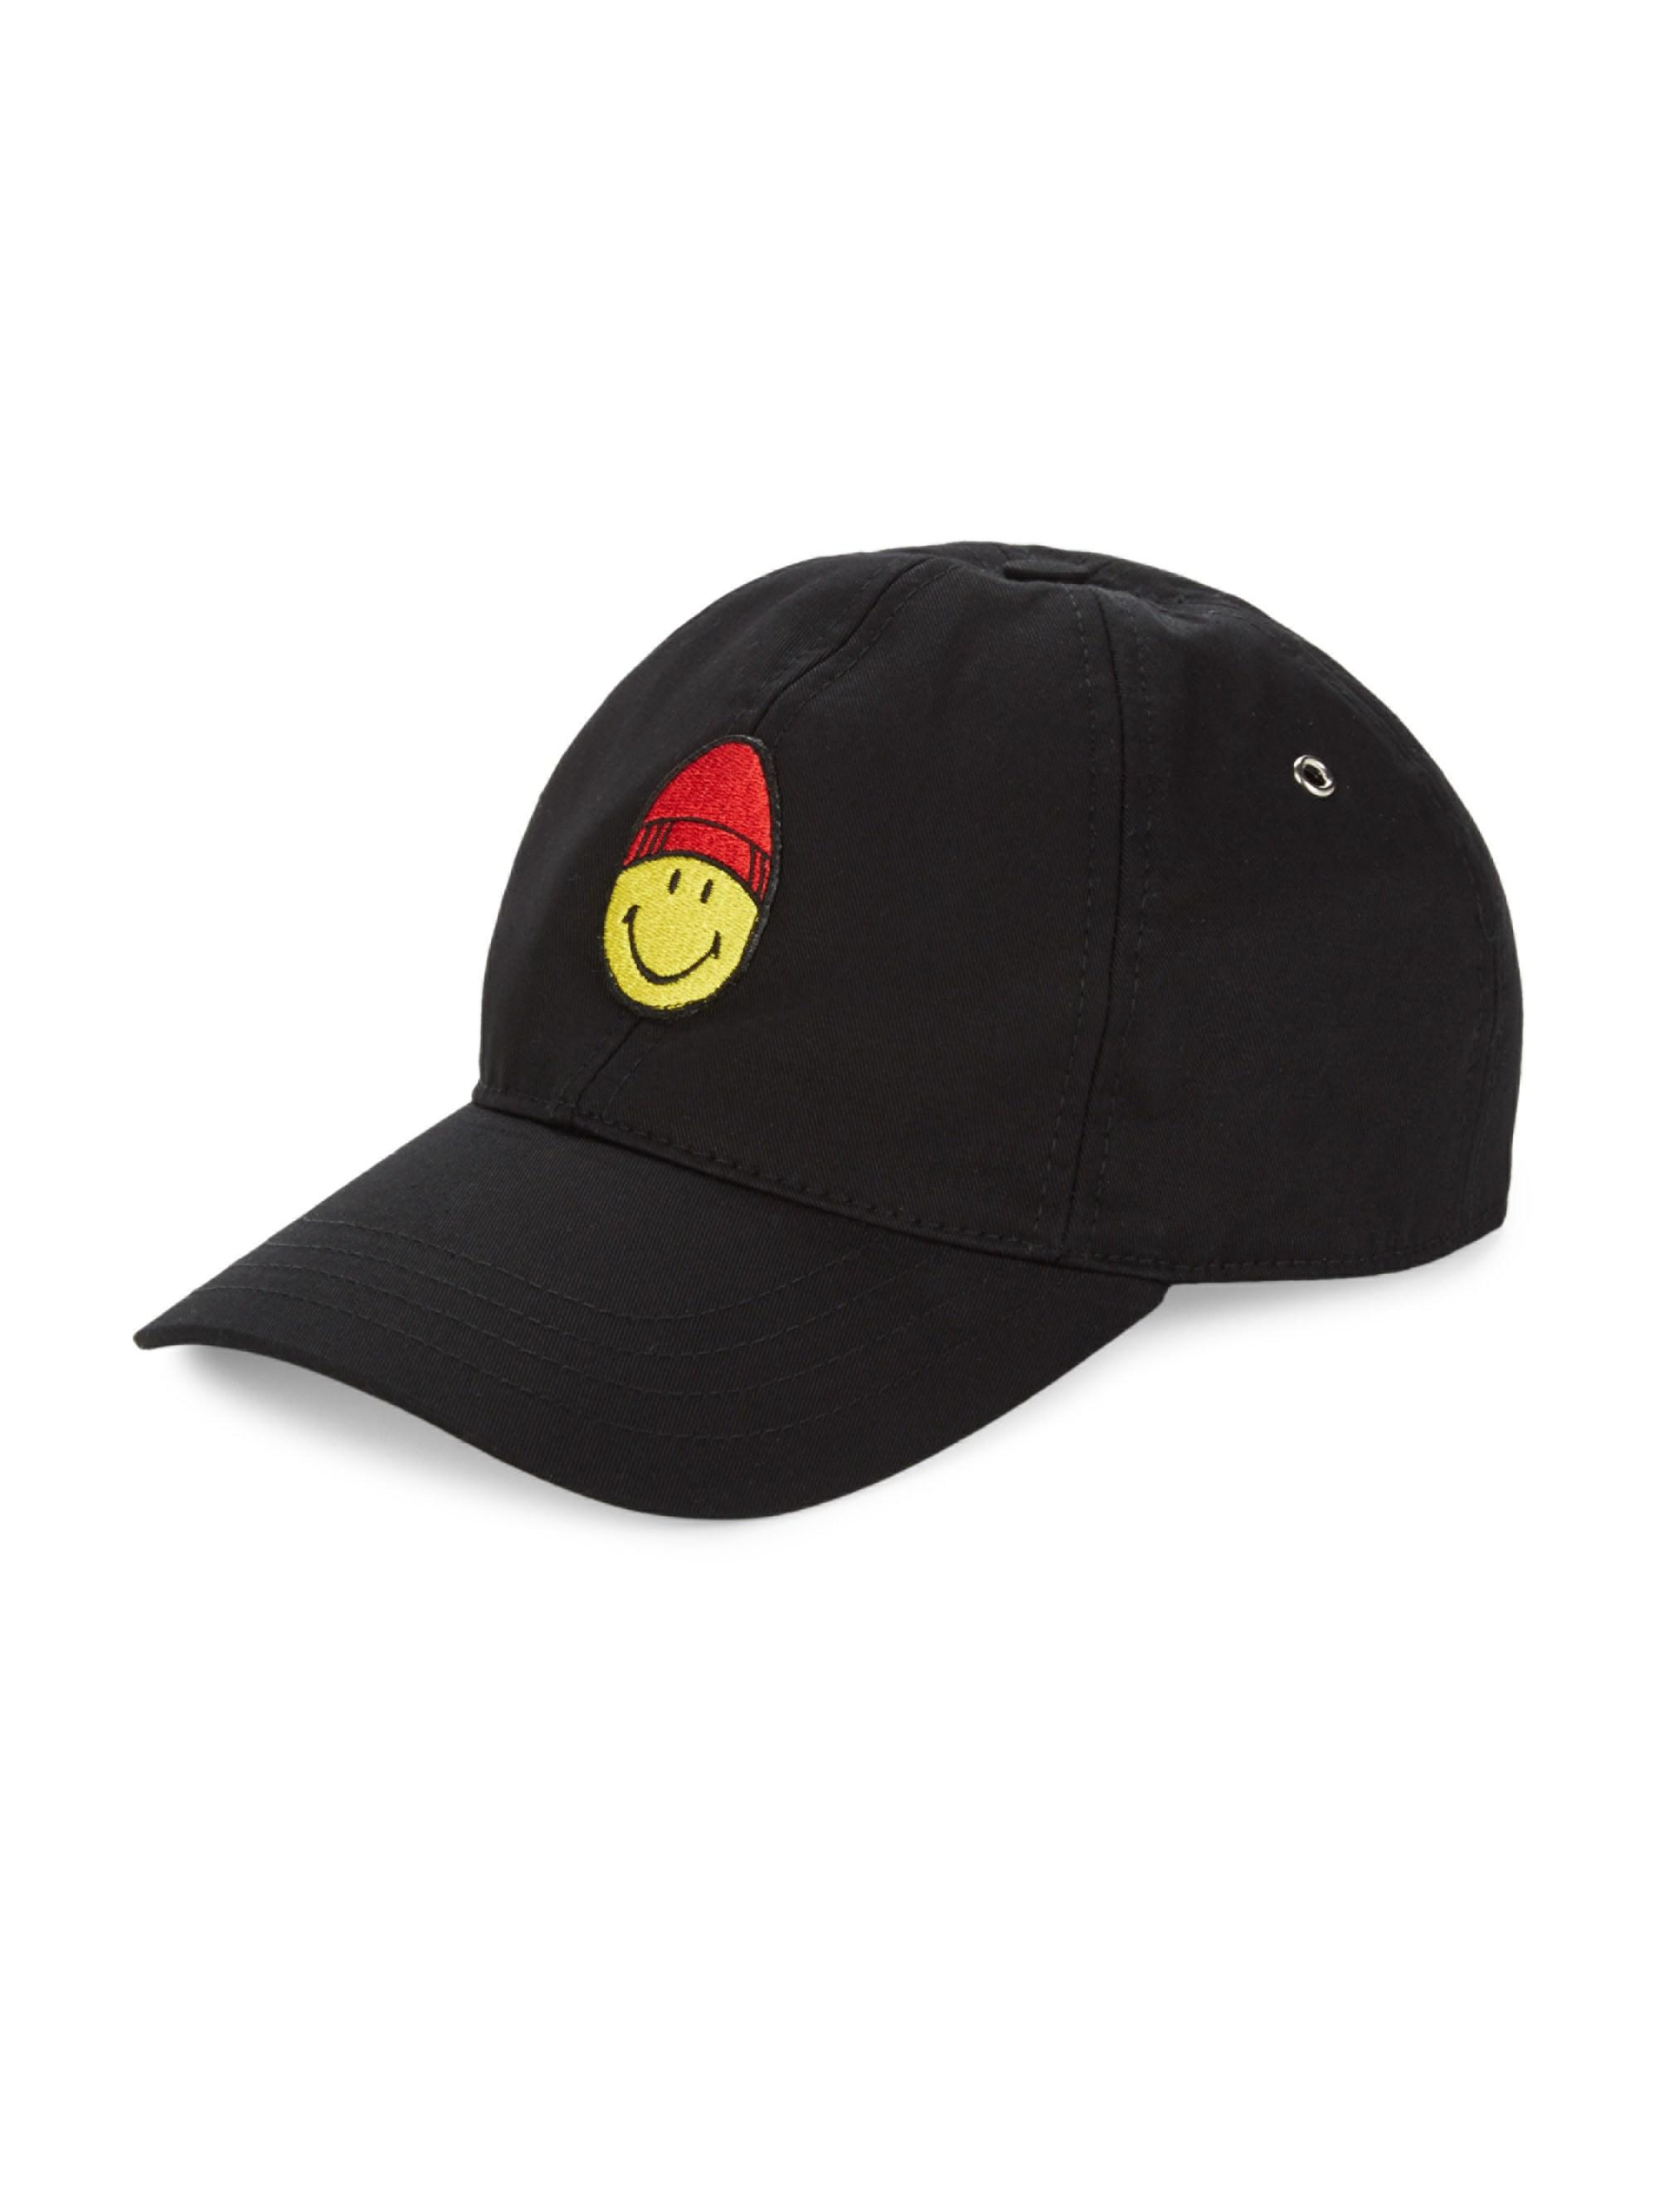 afd948658ca Lyst - AMI Black Smiley Edition Patch Cap in Black for Men - Save 24%